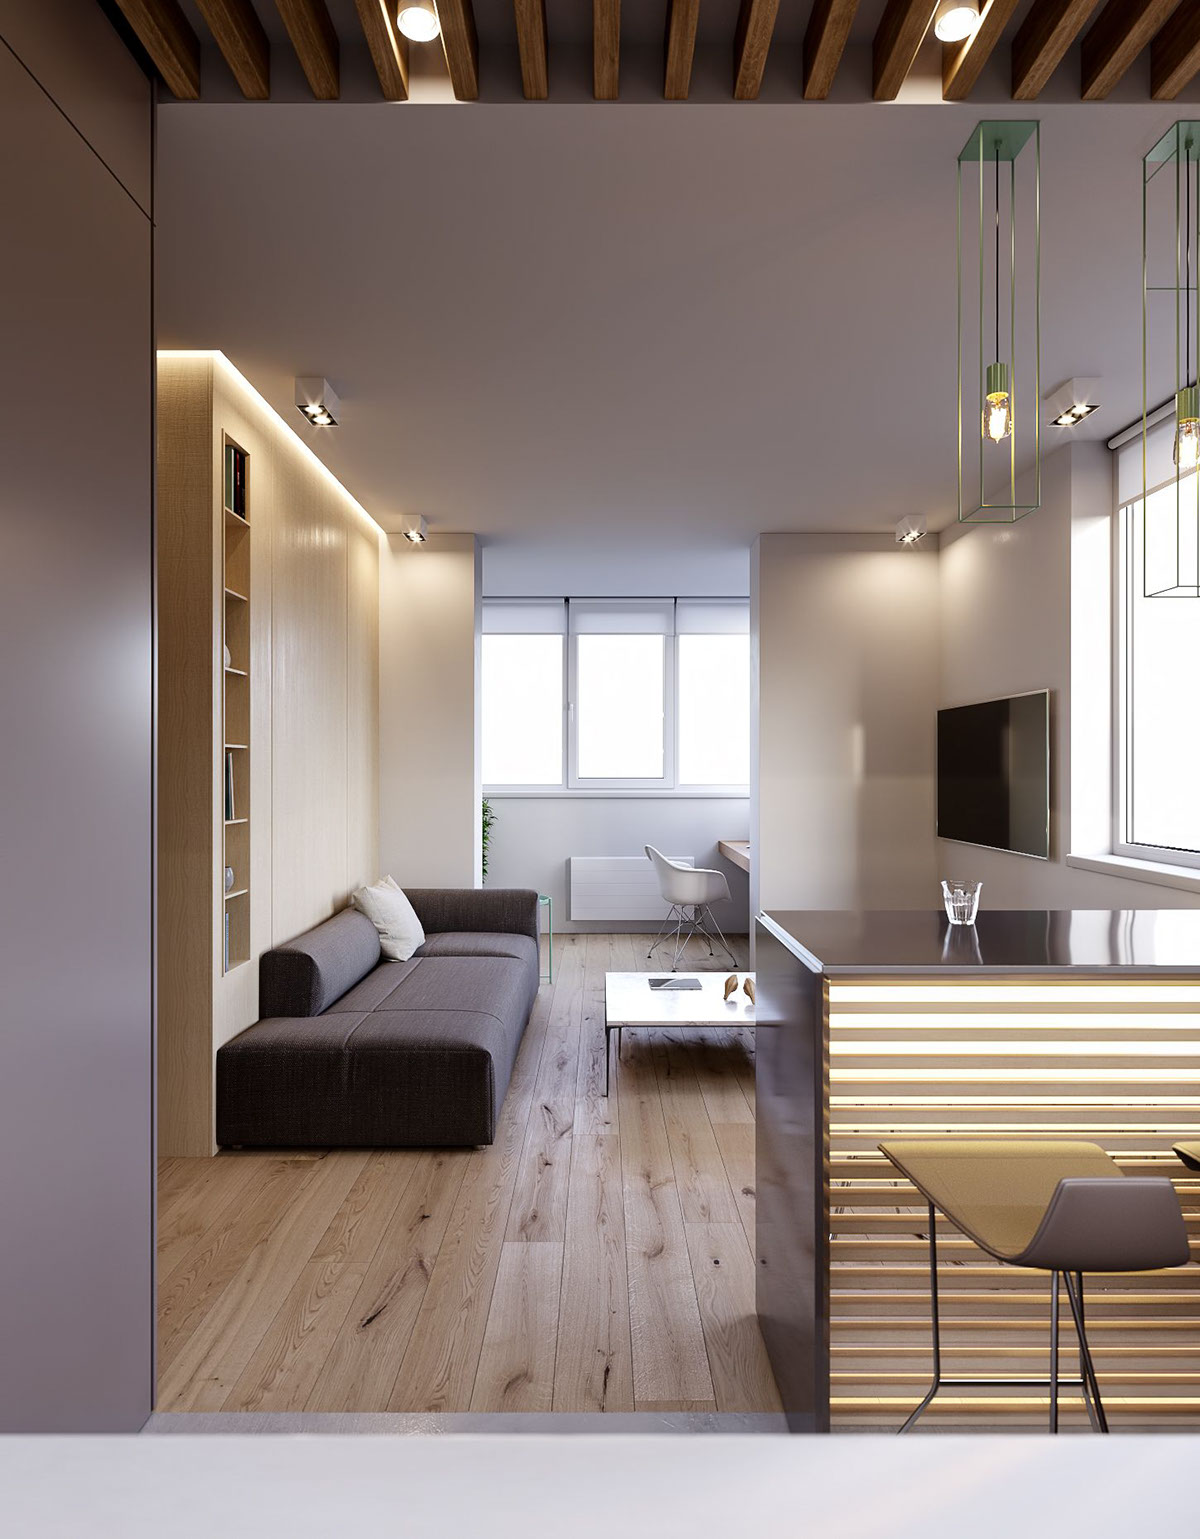 Kitchen Island Embellishments Wooden Flooring - 3 modern minimalist apartments for young families